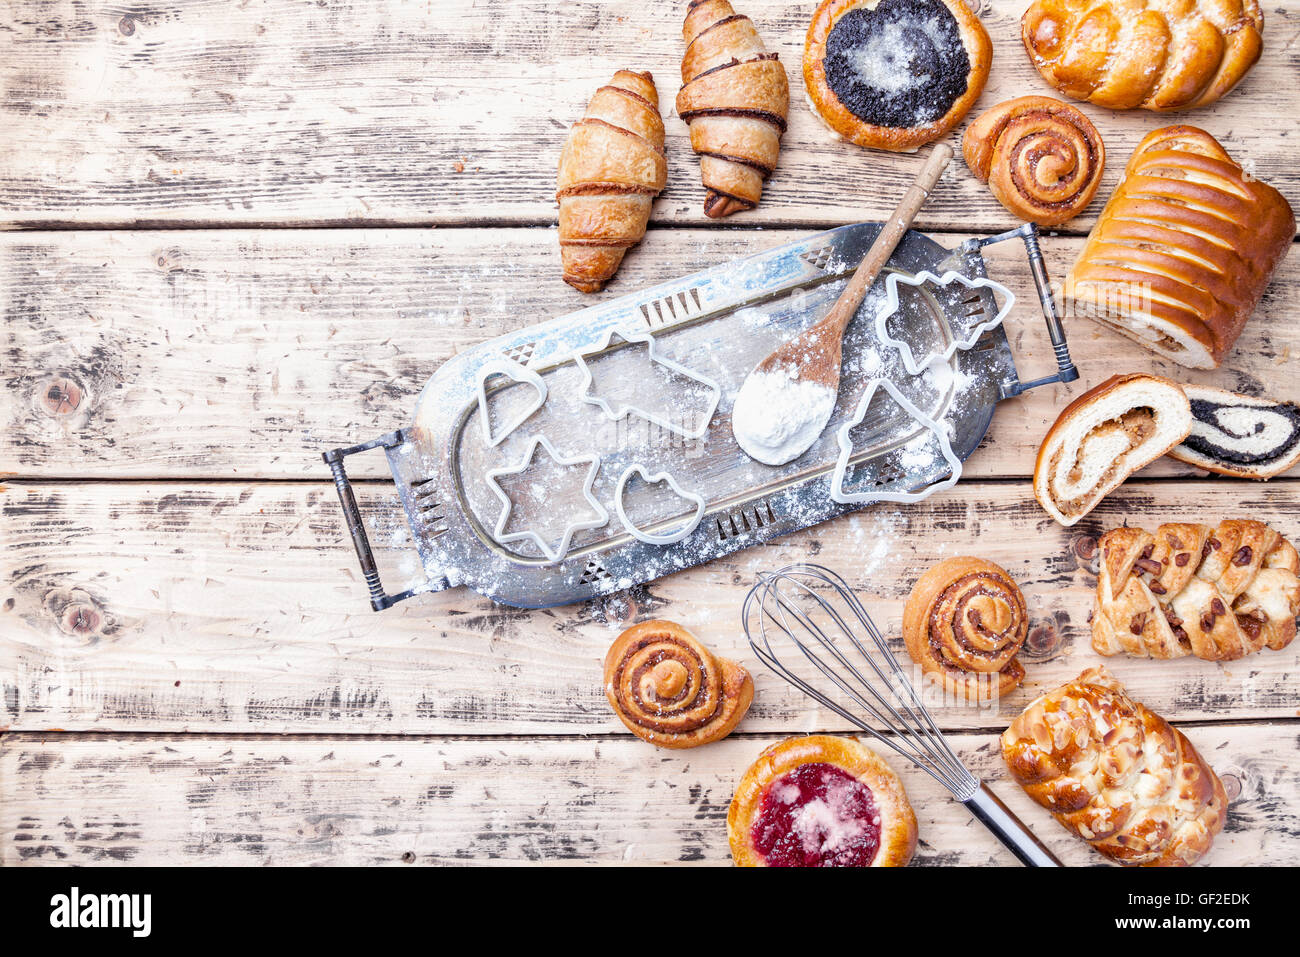 Delicious Christmas holiday baking background with ingredients and utensils - Stock Image